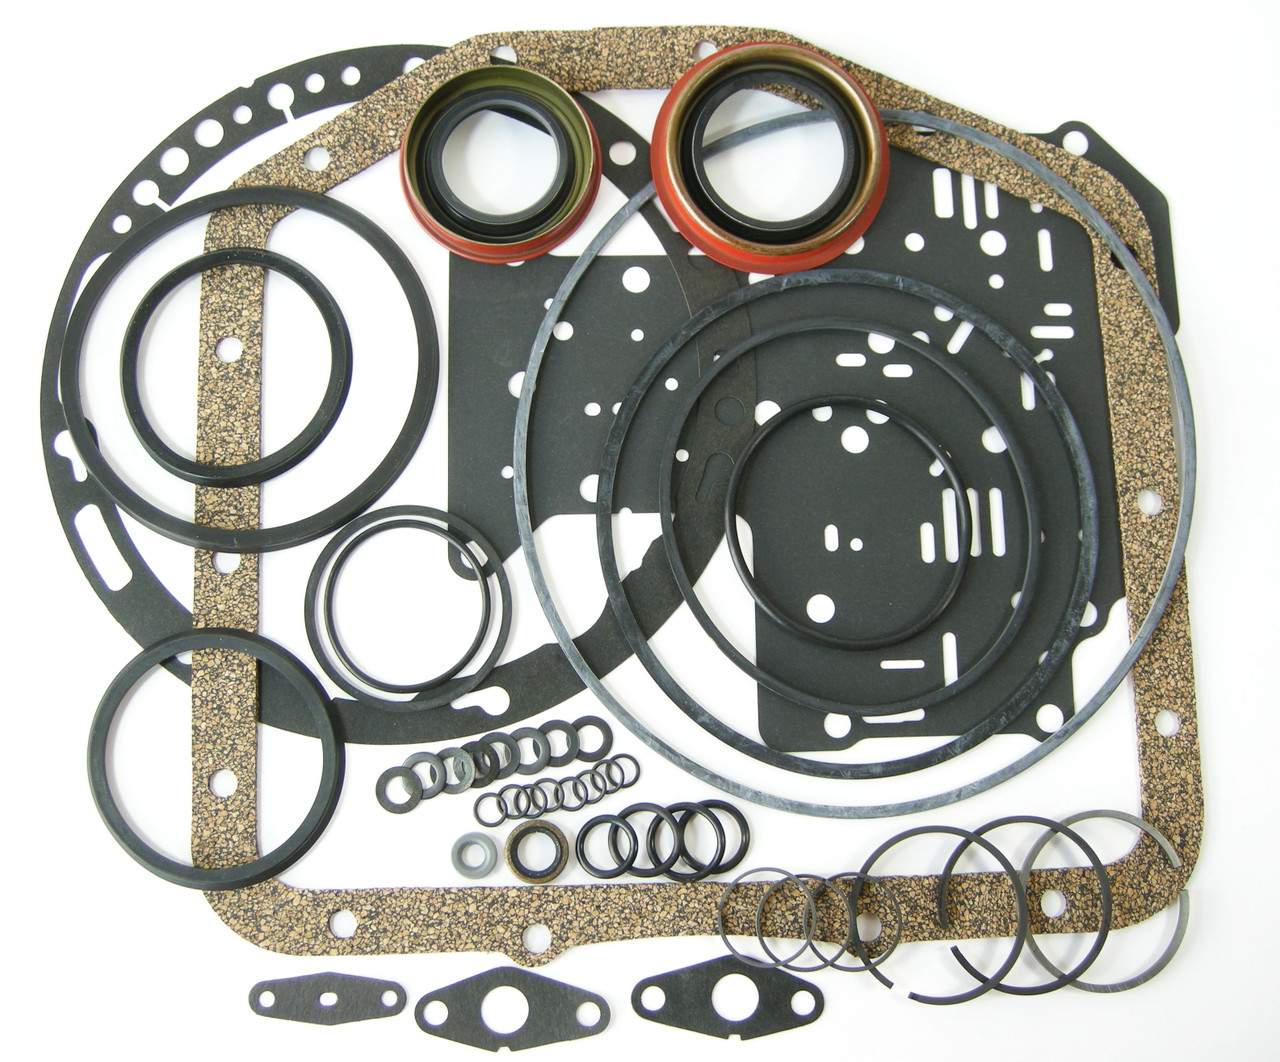 1964-69 ST300 ST-300 Super Turbine 300 Jetaway Gasket & Seal Kit